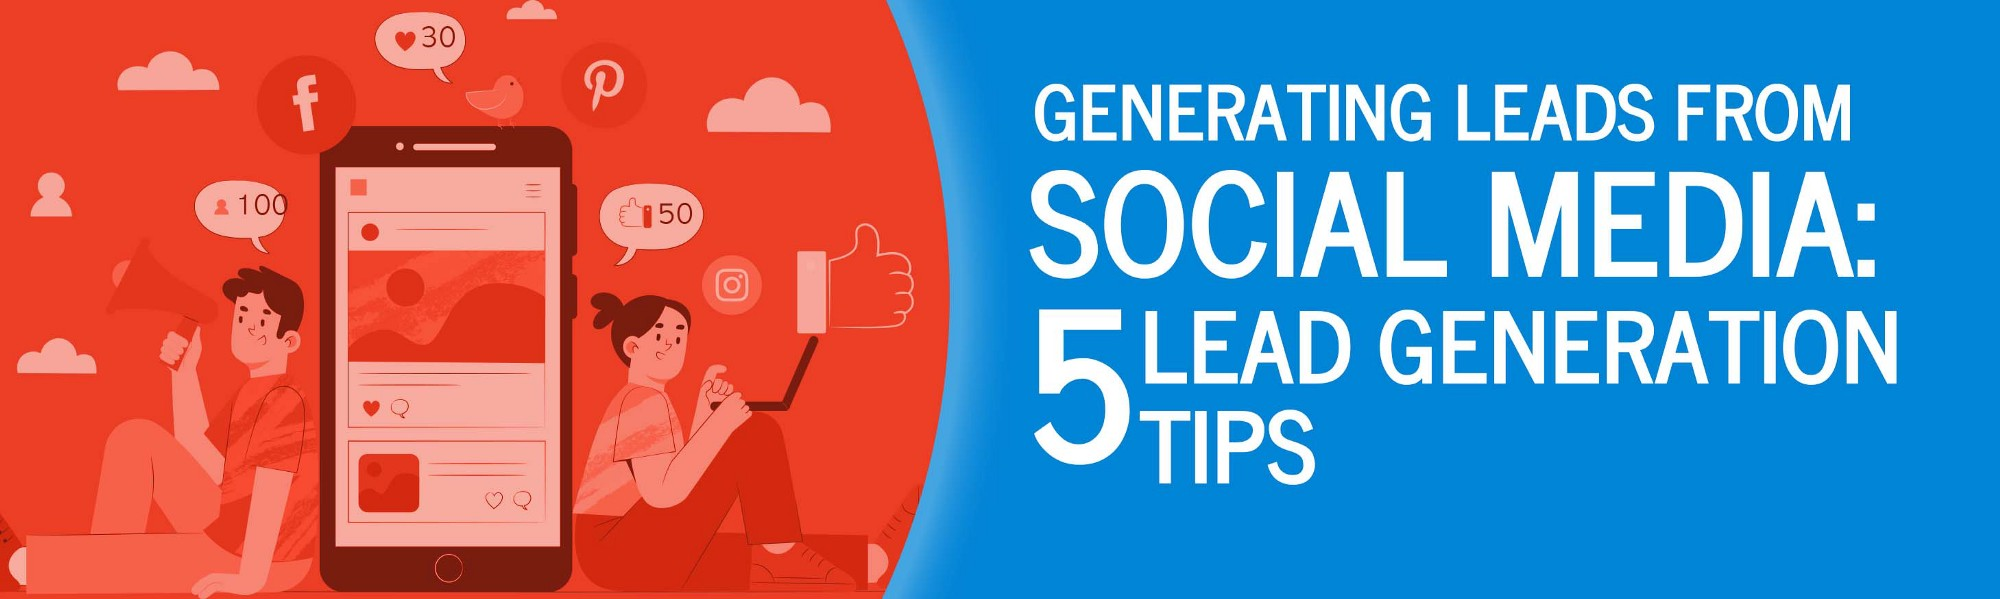 Generating Leads from Social Media: 5 Lead Generation Tips